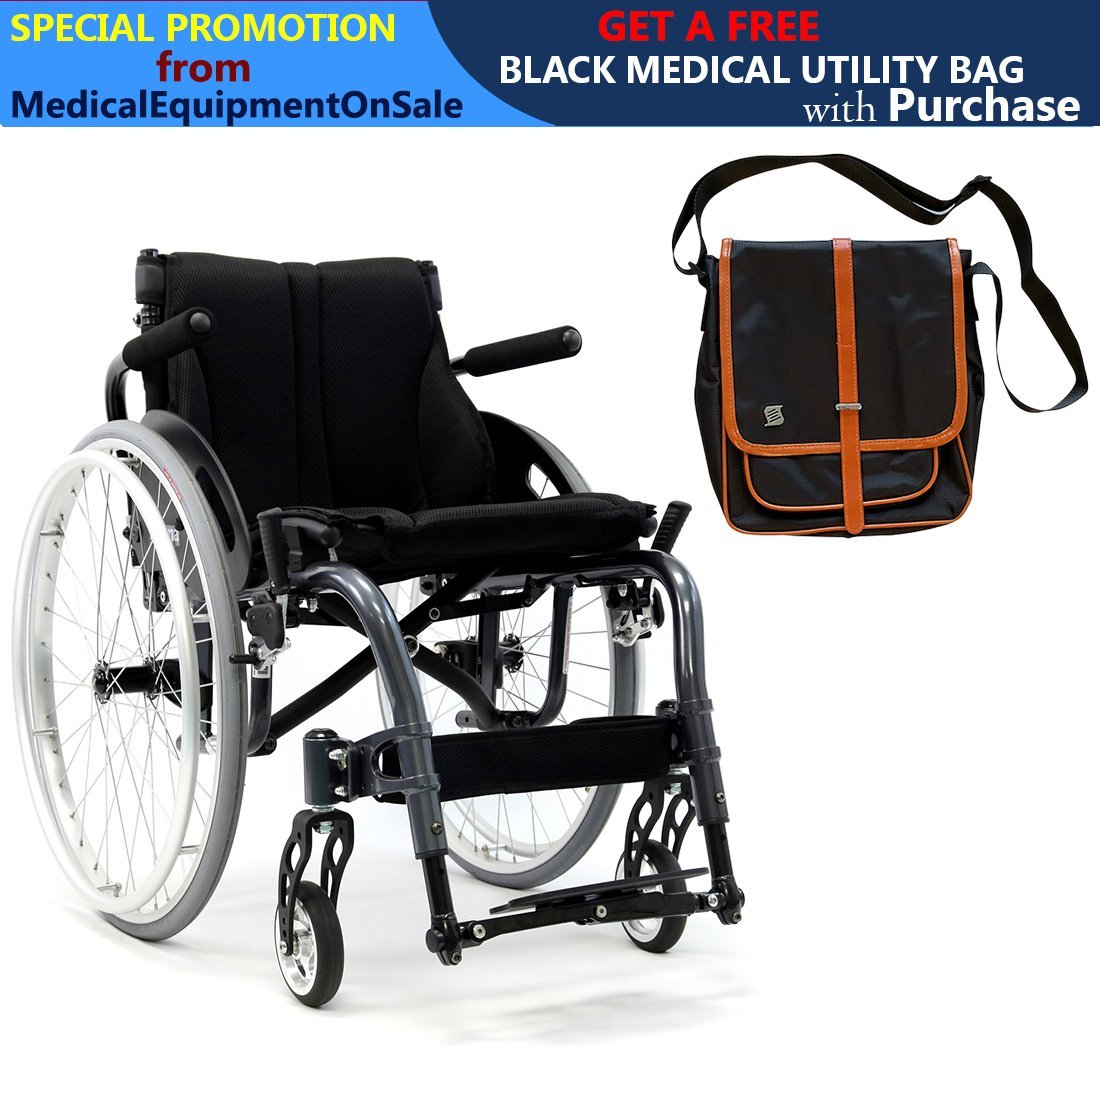 Karman S-Ergo ATX Ultralightweight Active Wheelchair | S-Shape Seat Size 16'' X 18'' | Seat Height Adjustable | Color Diamond Black & Free Black Medical Utility Bag with Trim!